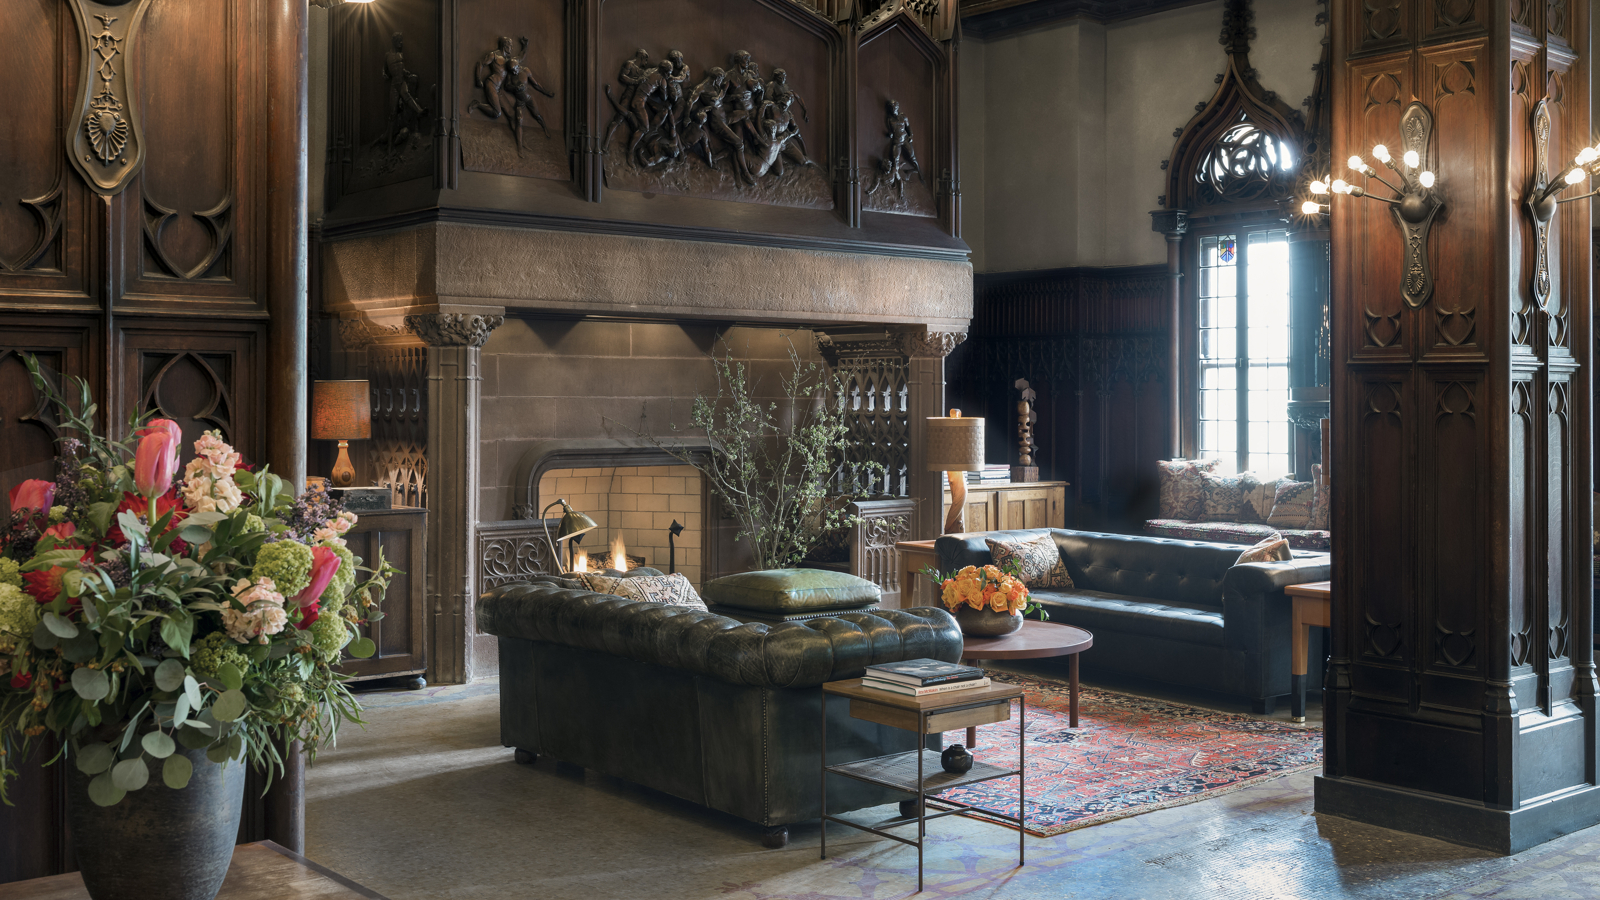 Lobby Sitting Area With Large Fireplace